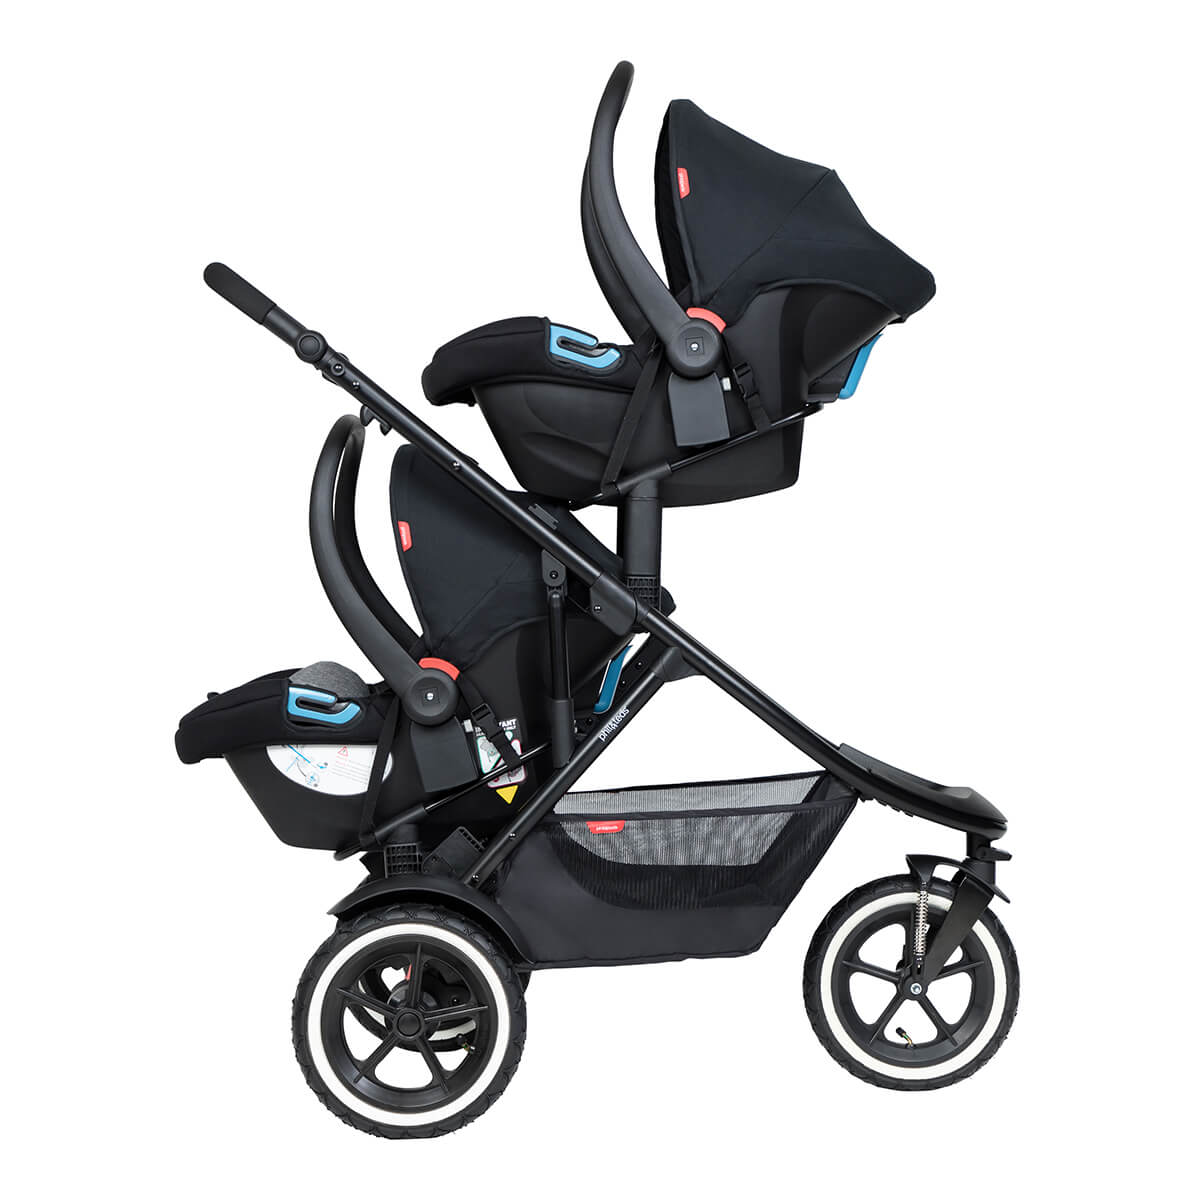 https://cdn.accentuate.io/4384002474081/19793940447402/philteds-sport-buggy-with-double-alpha-travel-system-v1626147561991.jpg?1200x1200